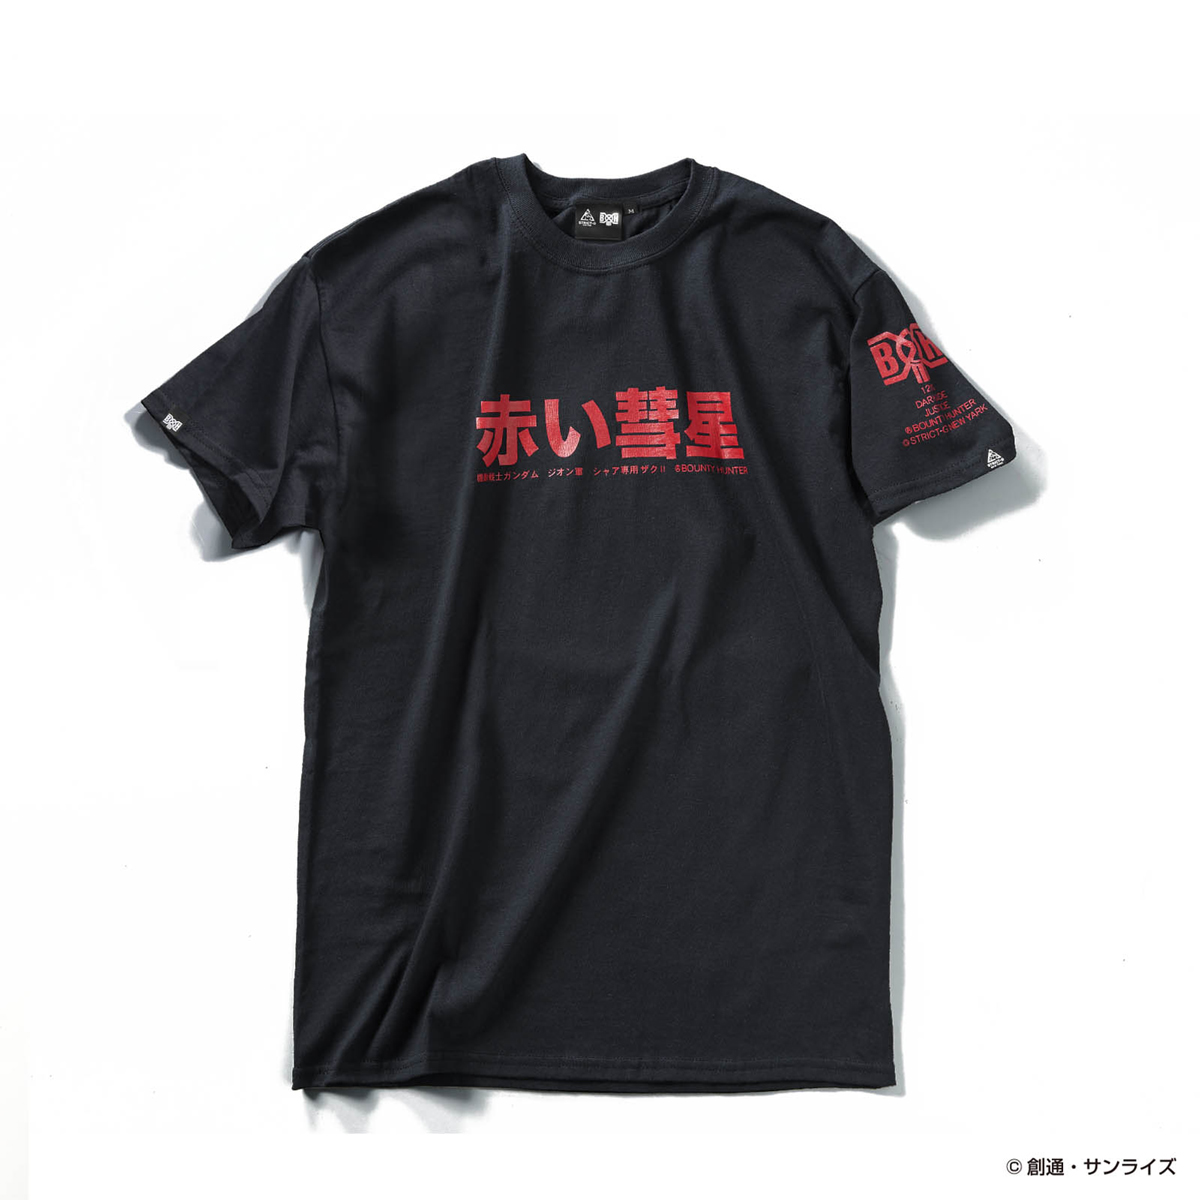 STRICT-G NEW YARK × BOUNTY HUNTER  赤い彗星Tシャツ